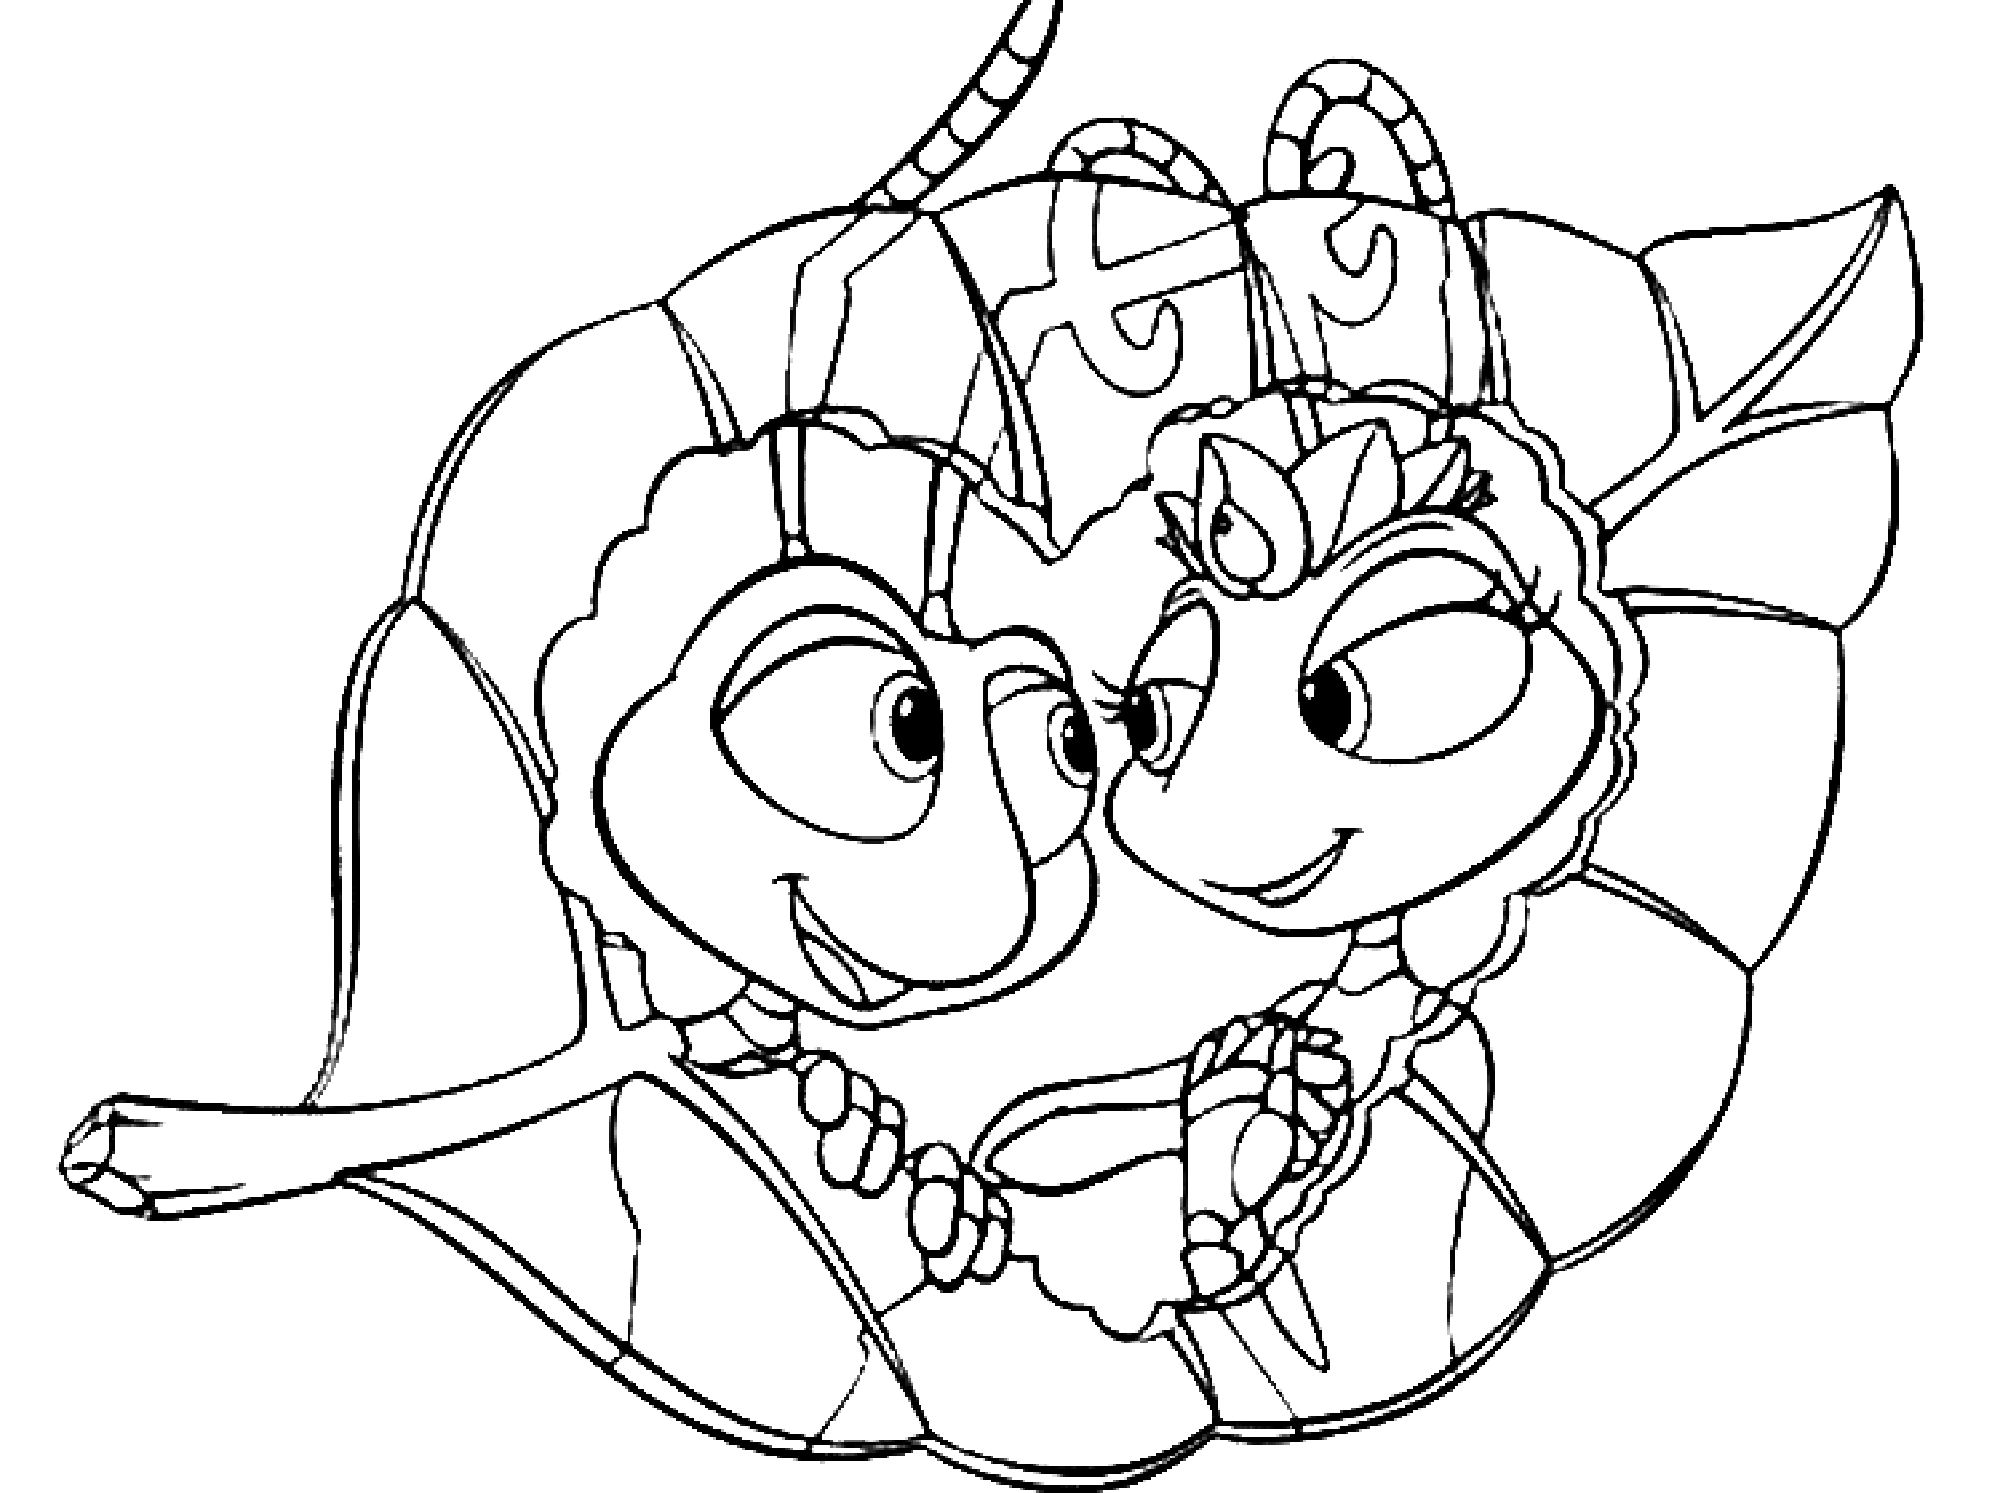 Incredible A Bugs Life coloring page to print and color for free